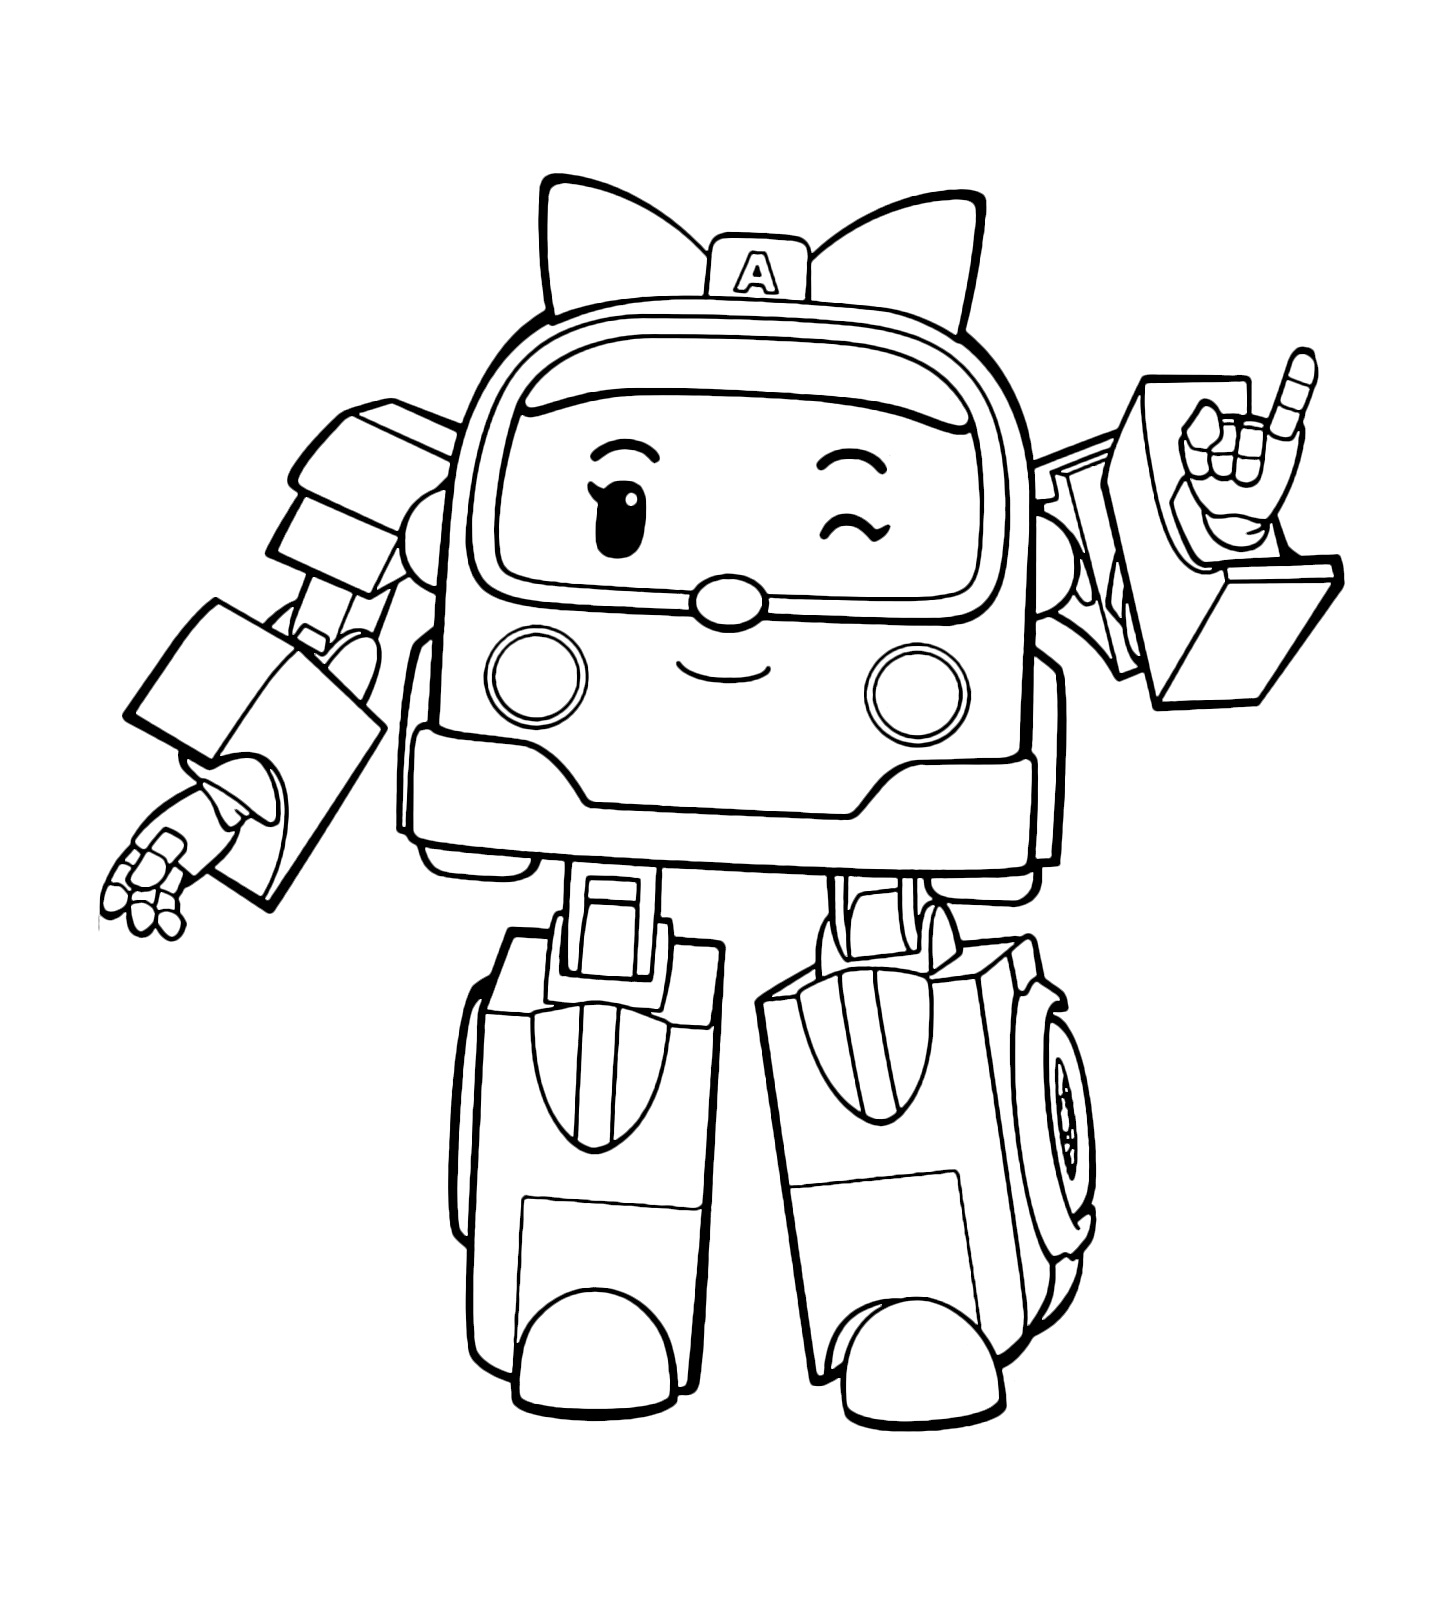 1448x1600 Robocar Poli Amber Coloring Pages For Kids